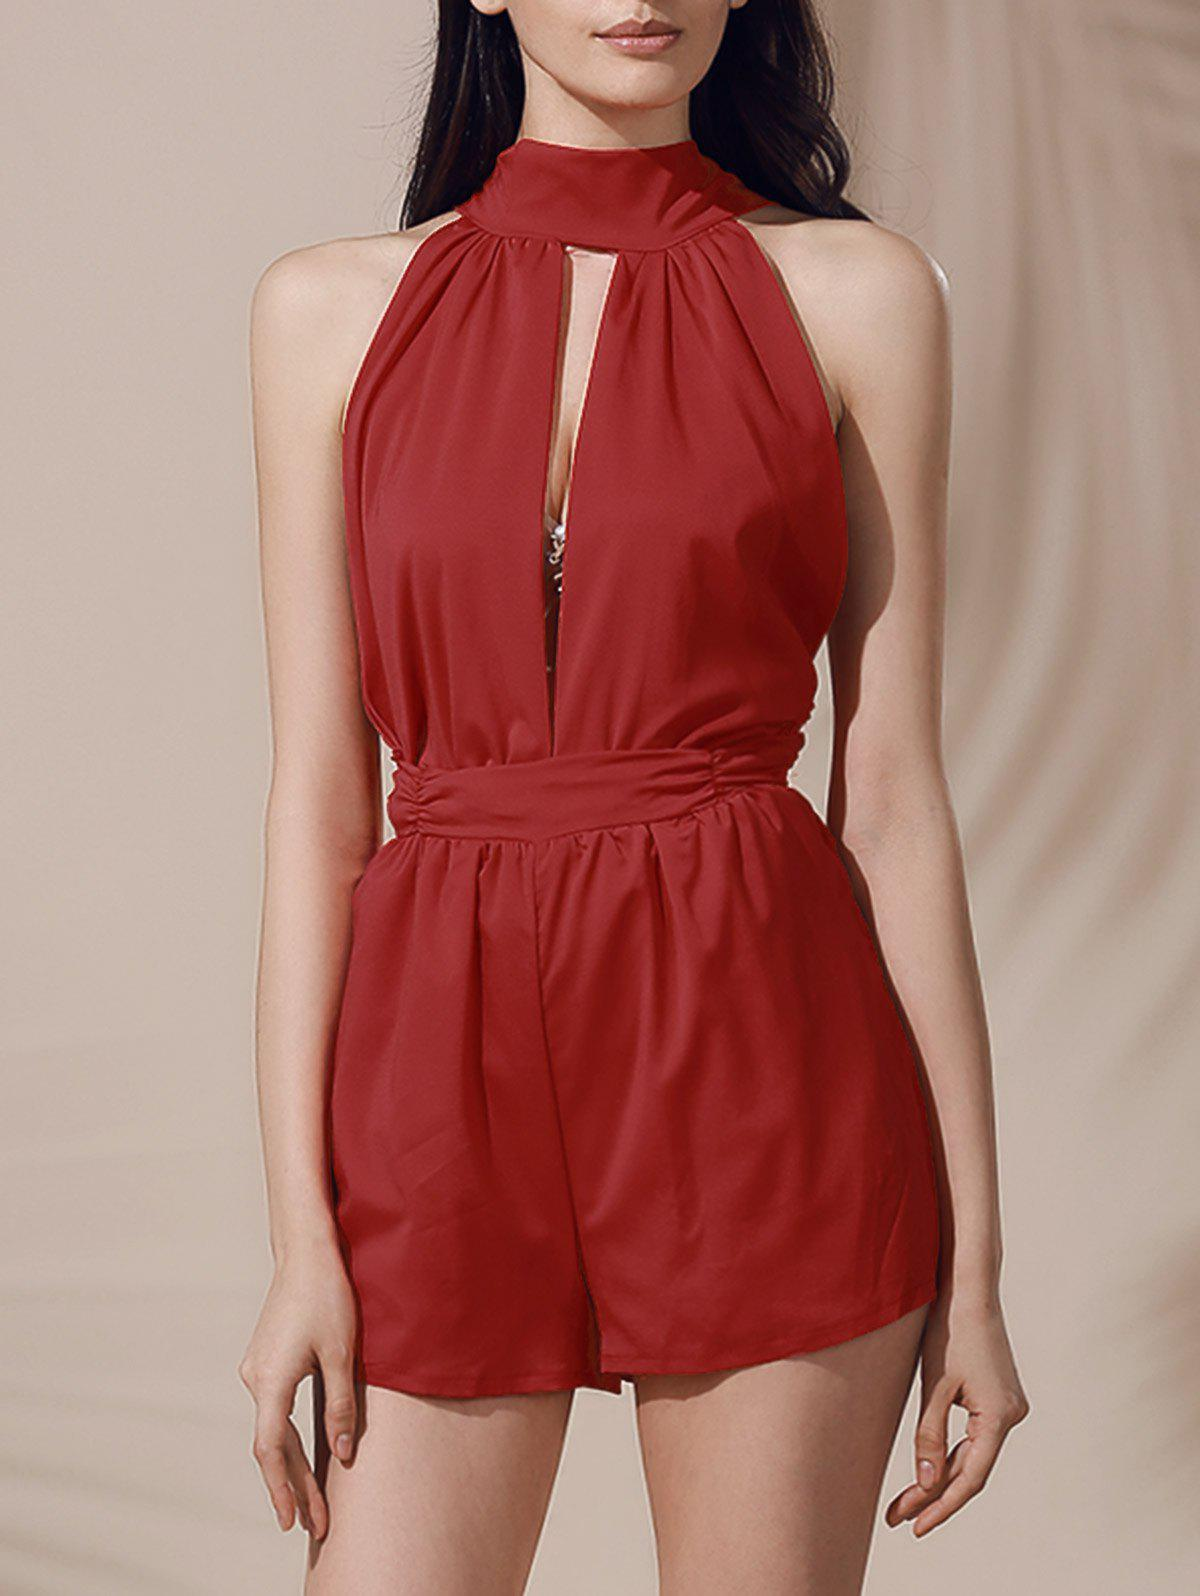 Fashionable Sleeveless Backless Pure Color Cut Out Women's Romper